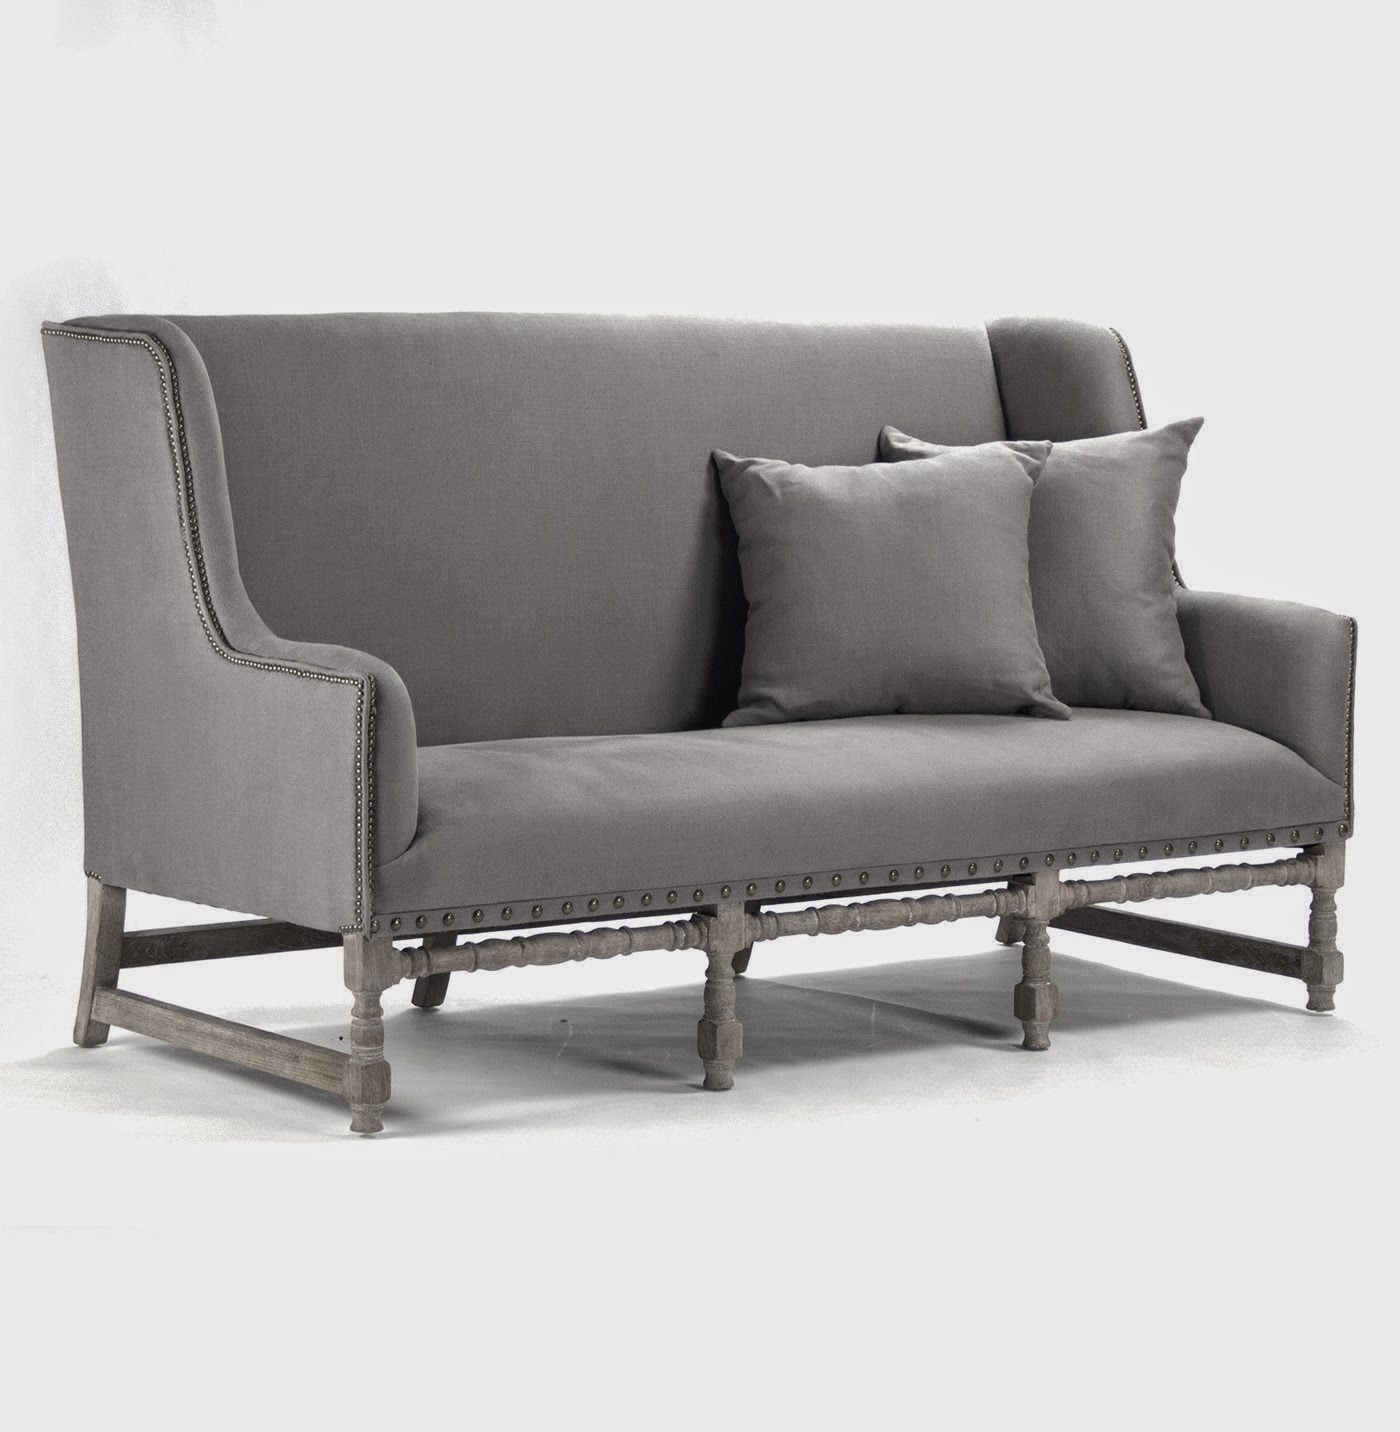 modern buchannan faux leather sofa concept-Cool Buchannan Faux Leather sofa Décor